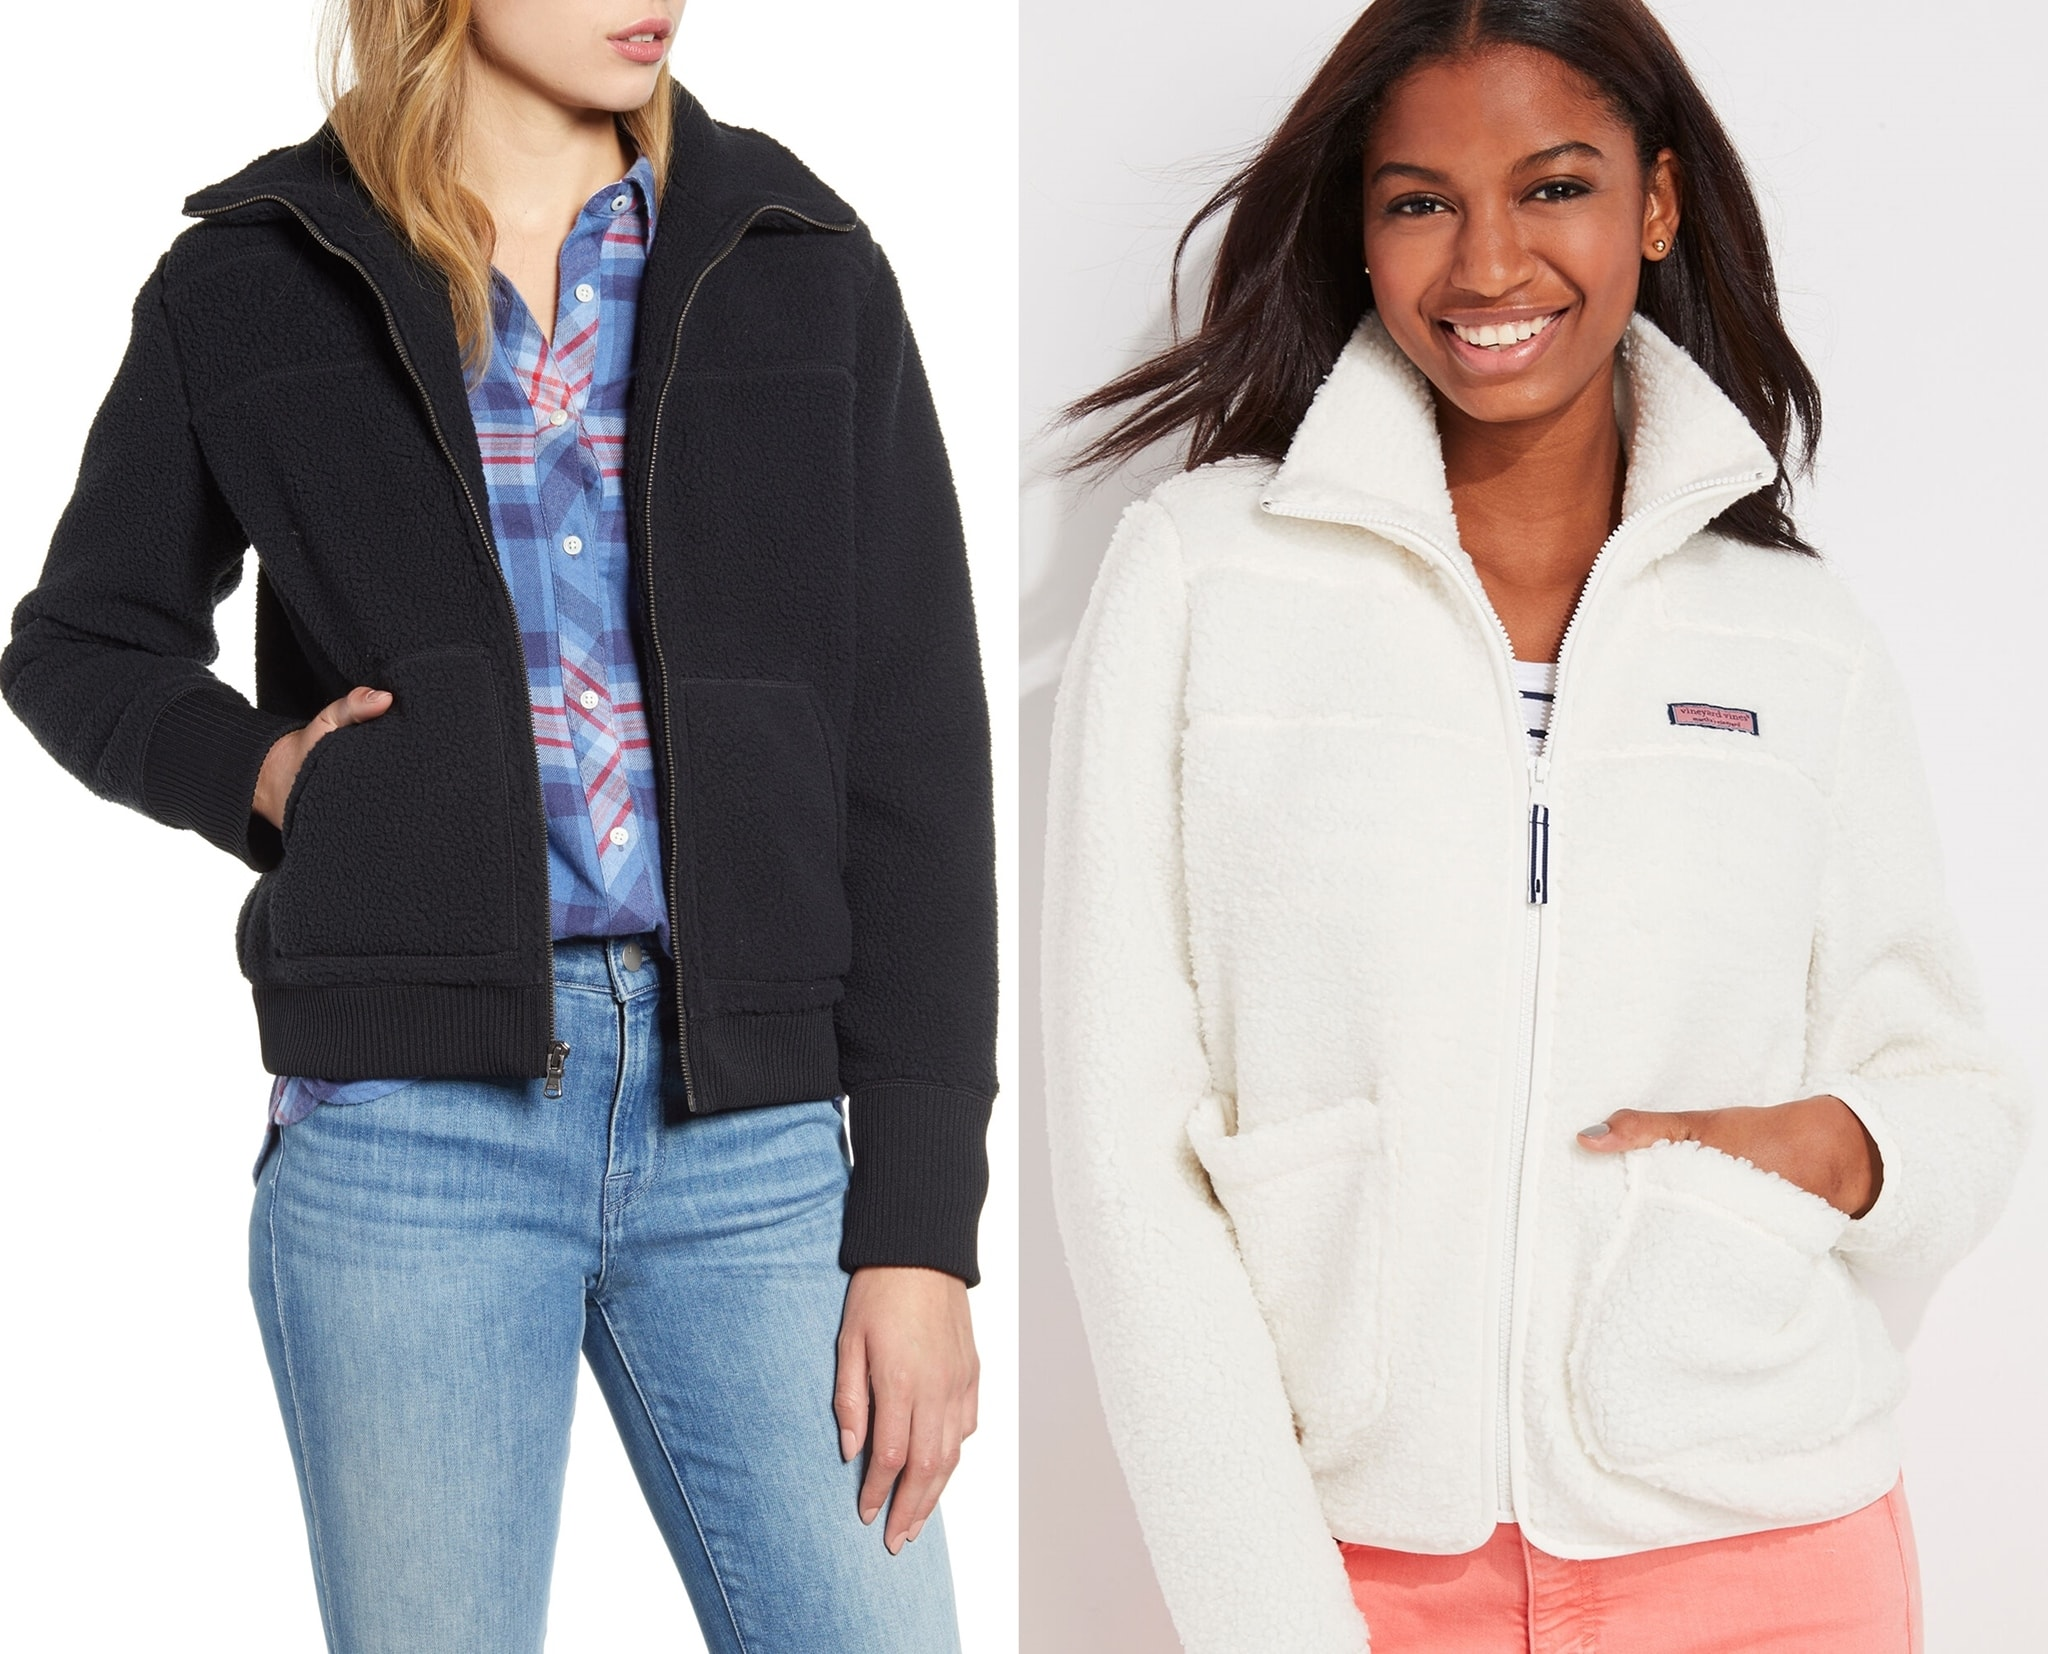 A go-to jacket for Saturdays on the sidelines feels wonderfully cozy inside and out in high-pile fleece with a split kangaroo pocket to keep hands warm